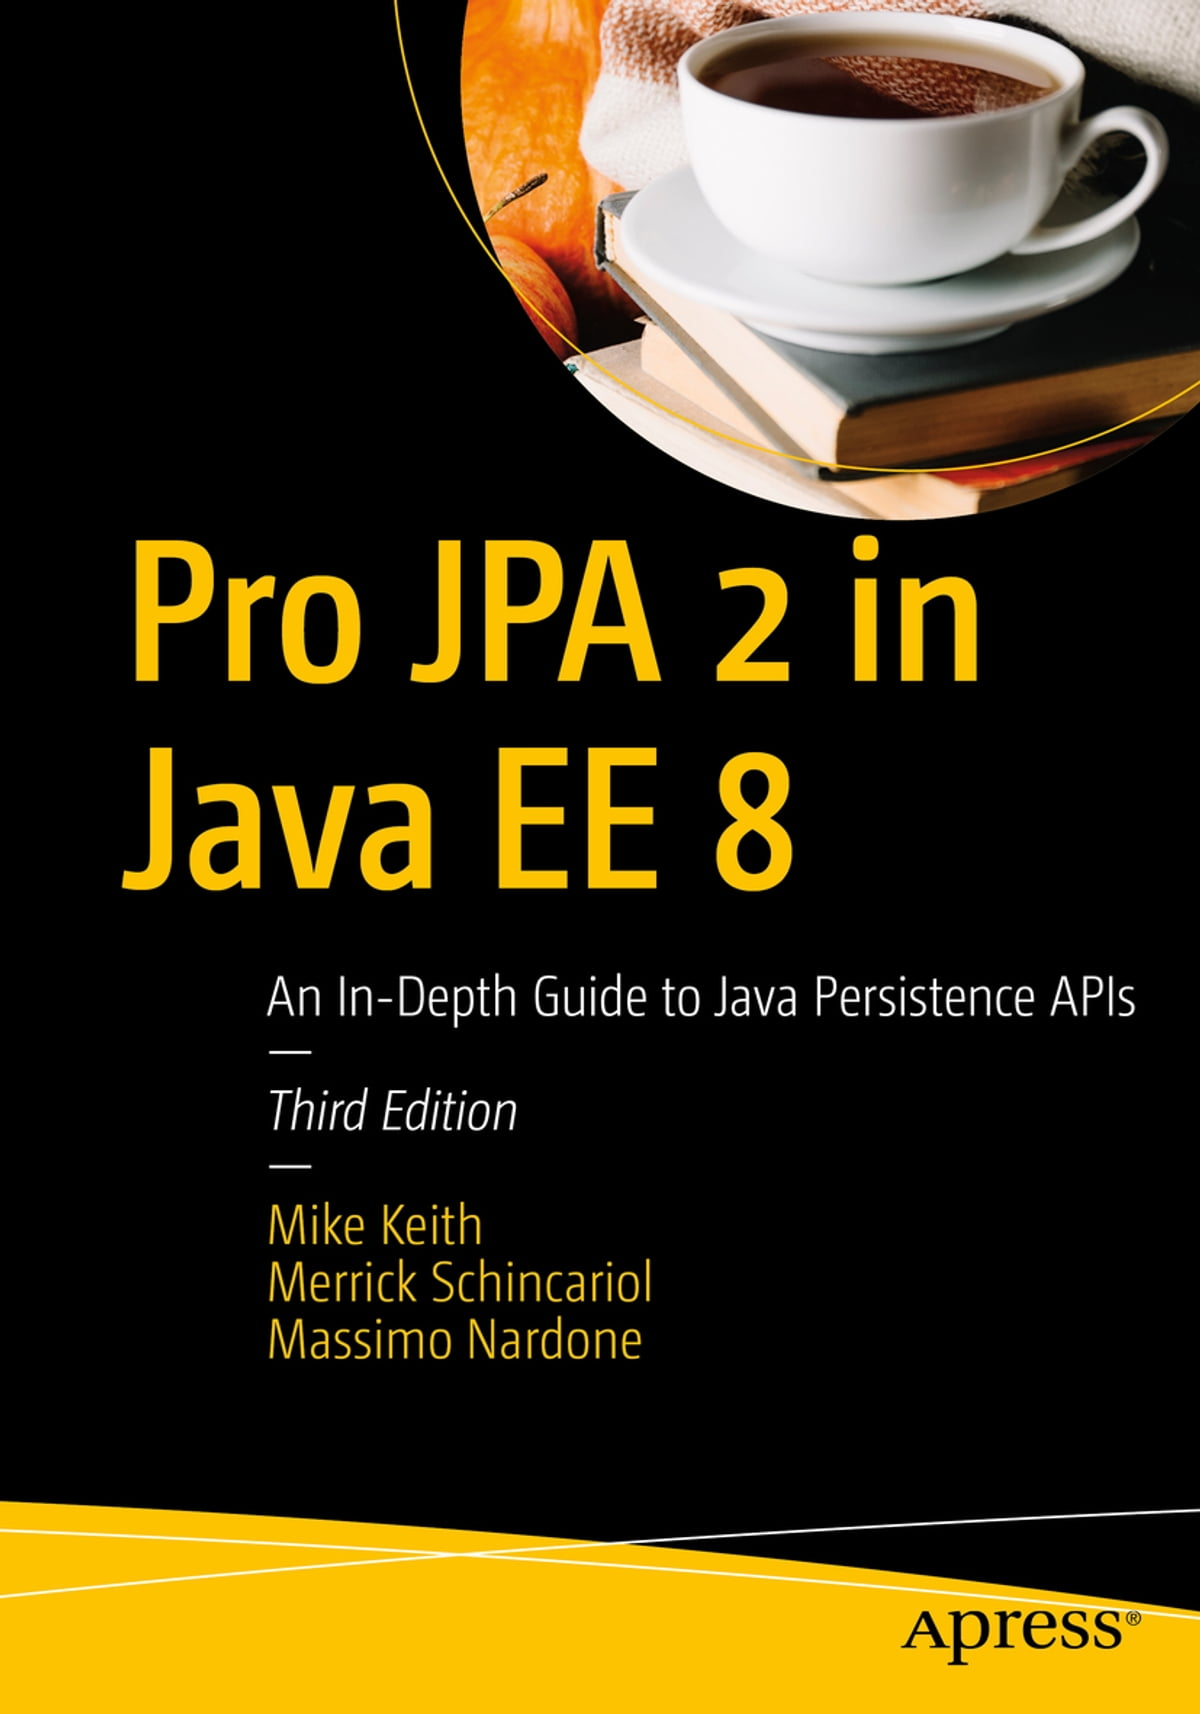 Pro jpa 2 in java ee 8 ebook by mike keith 9781484234204 pro jpa 2 in java ee 8 ebook by mike keith 9781484234204 rakuten kobo baditri Image collections